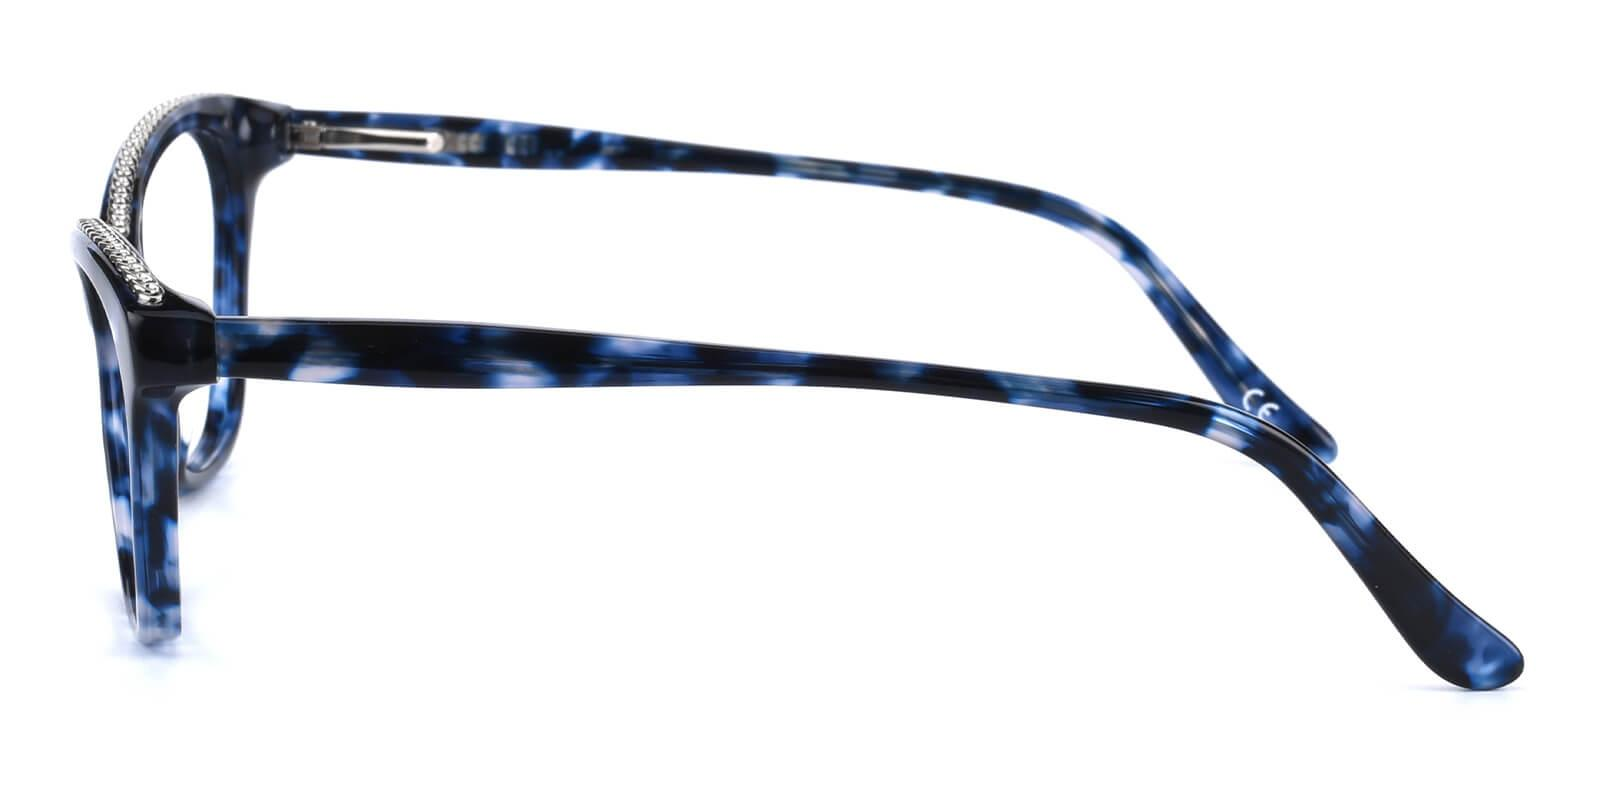 Her-Striped-Cat-Acetate-Eyeglasses-additional3